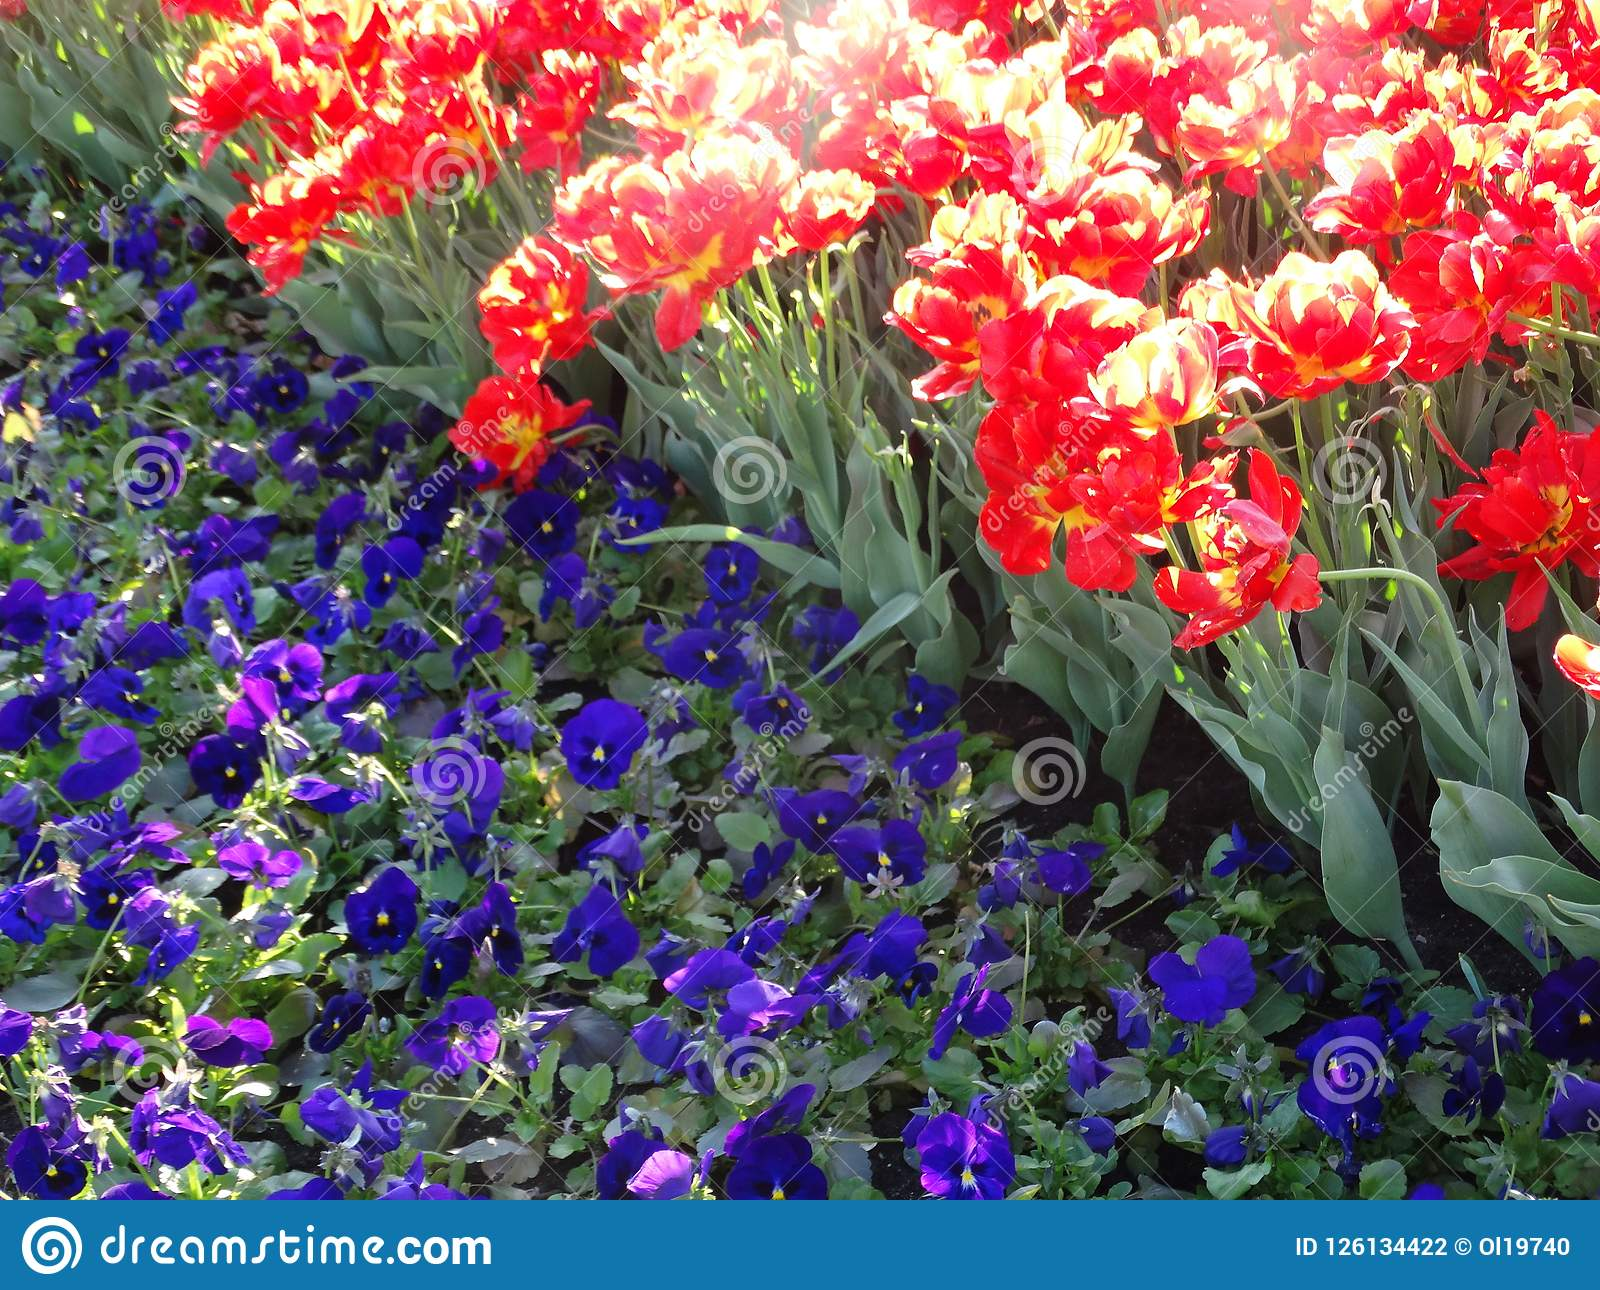 Three Colored Violas And Red Tulips Stock Photo Image Of Purple